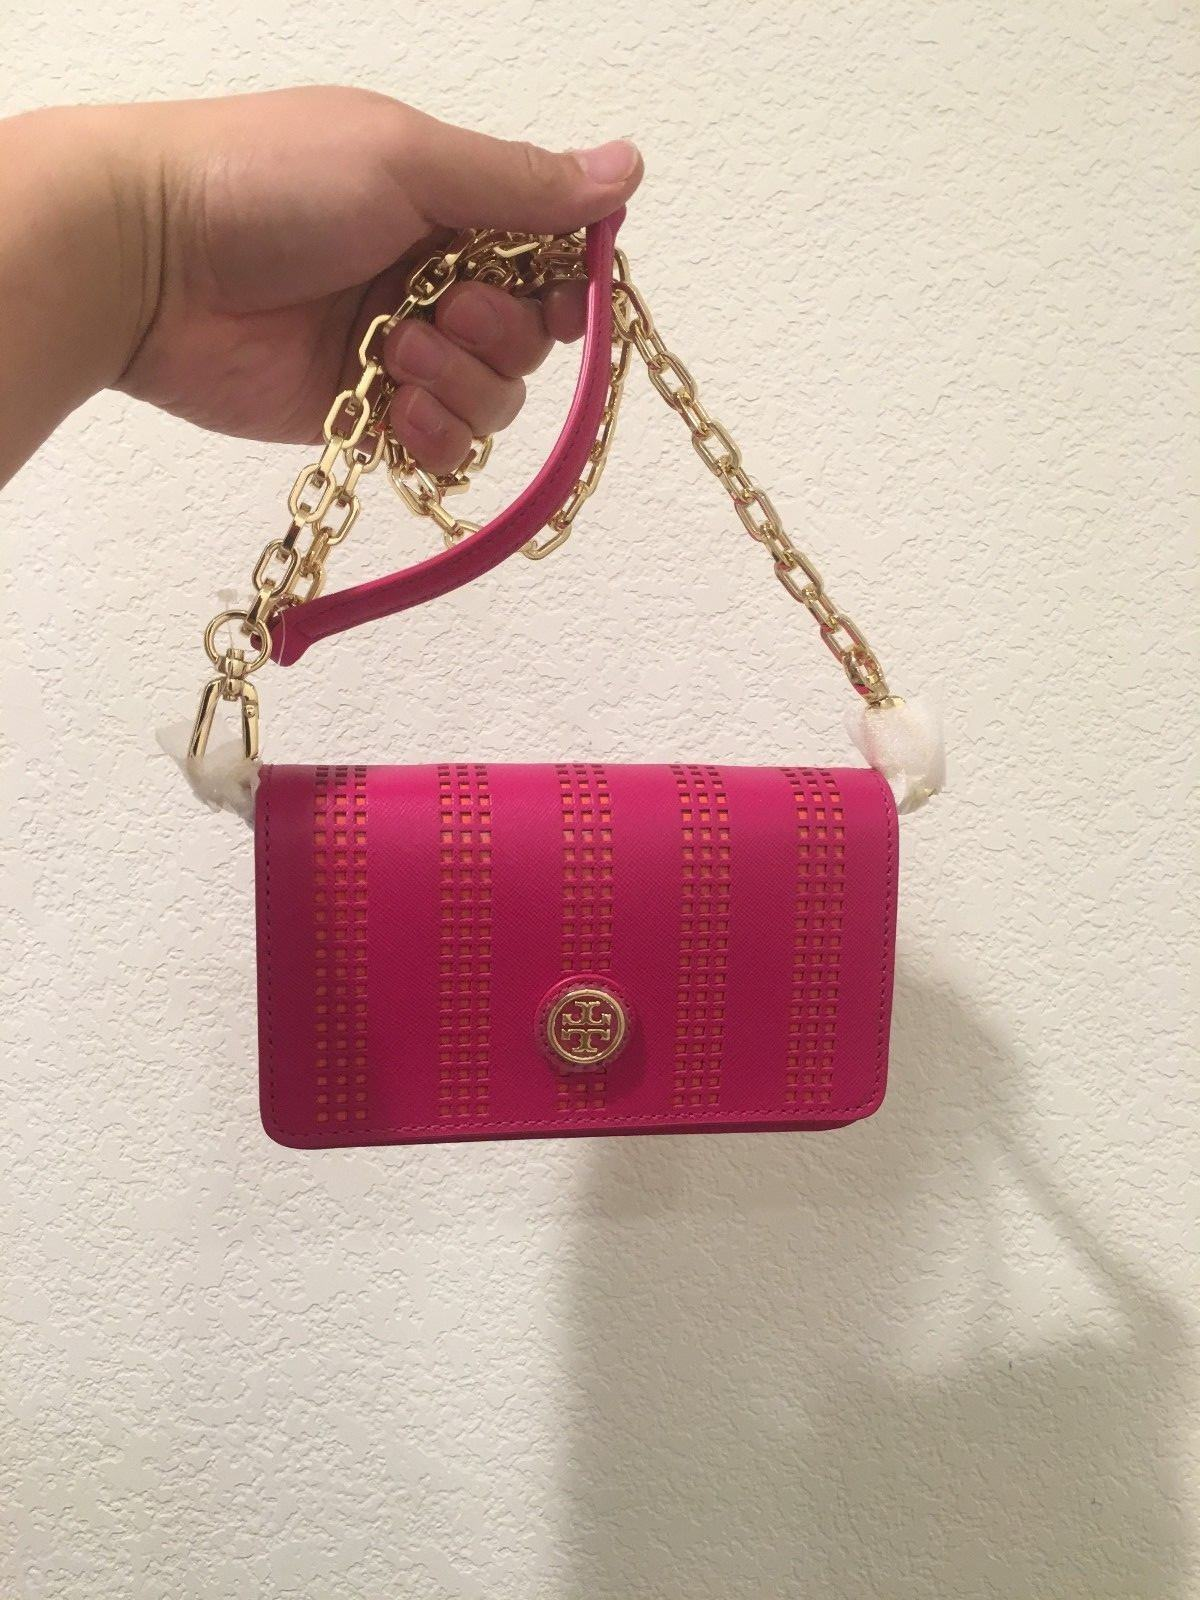 Primary image for Tory Burch Robinson Mini CARNATION RED 51149298-623 Chain Shoulder Bag